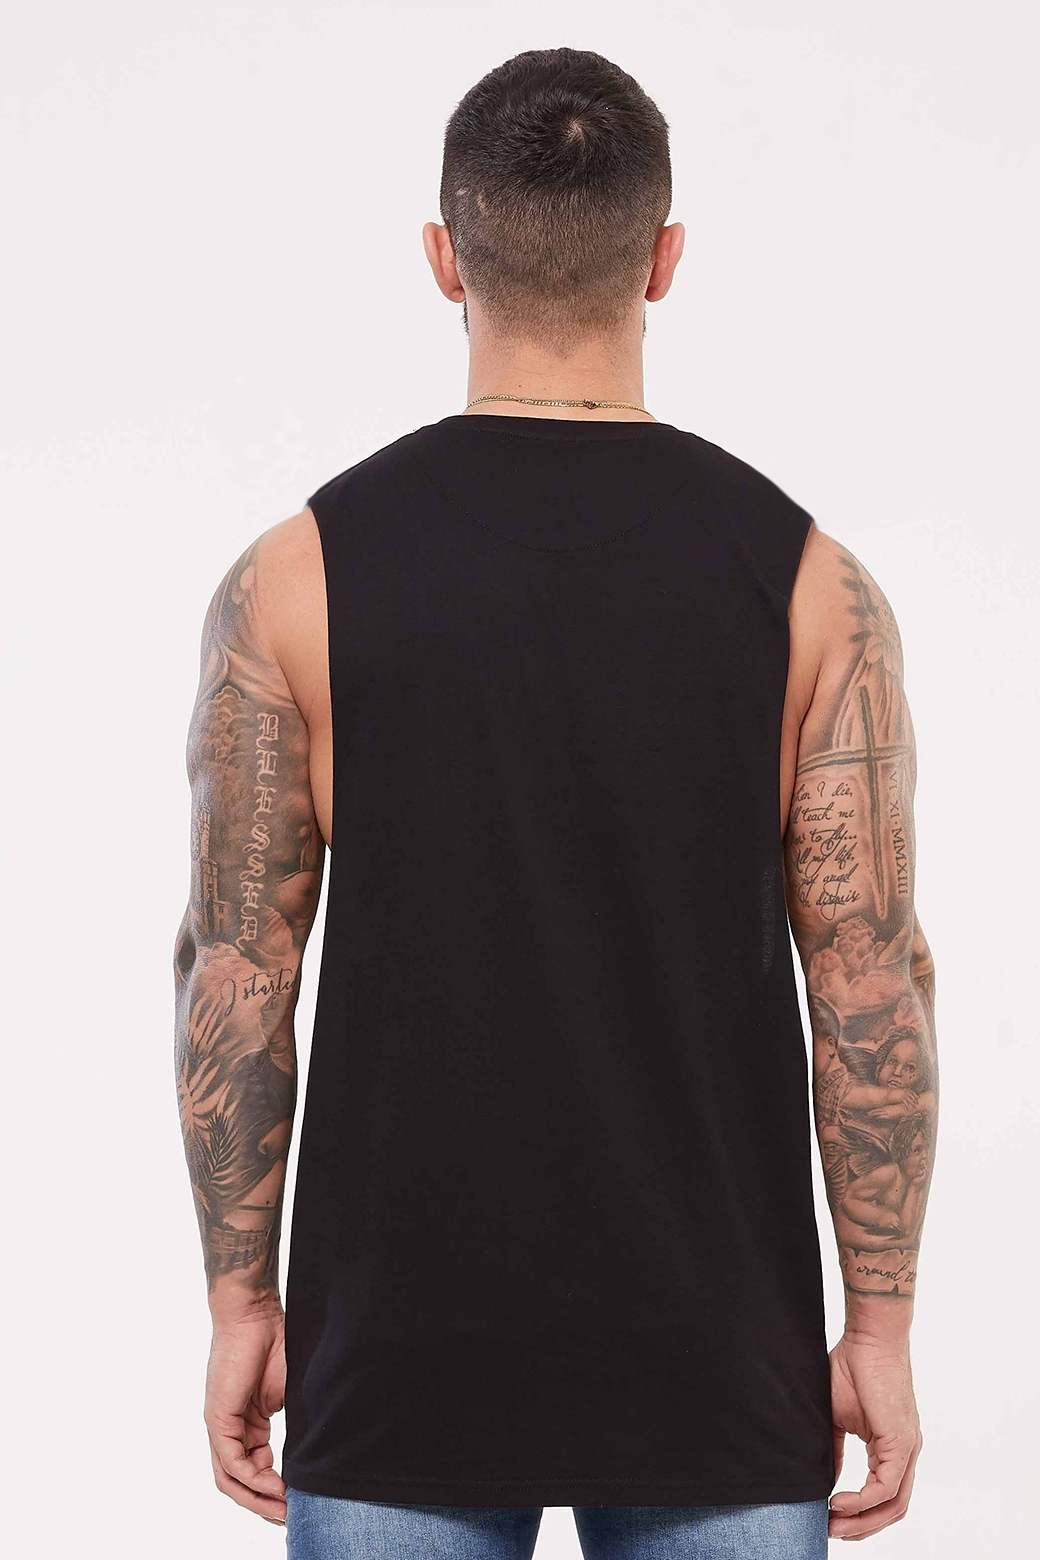 Good For Nothing Edition Cut Away Vest - Black - 2